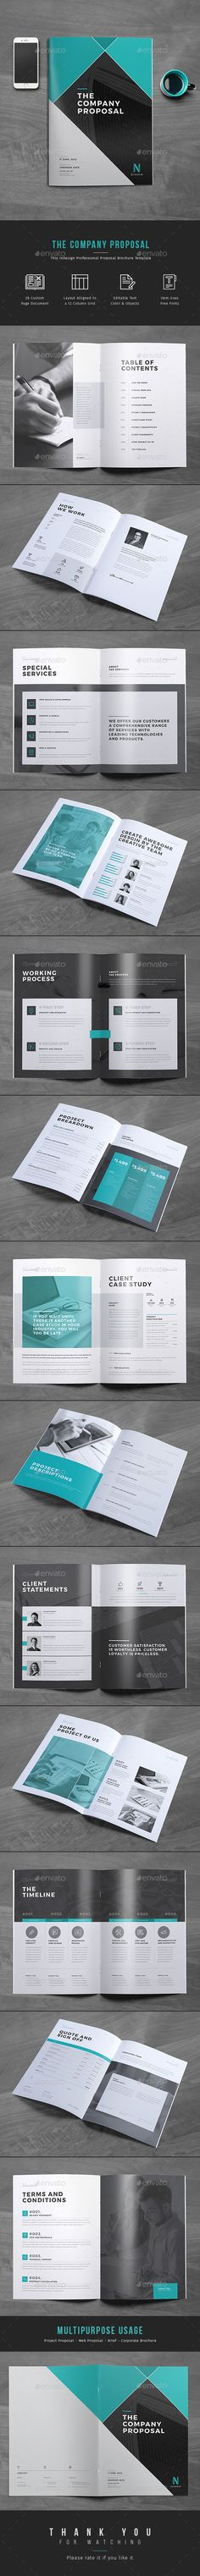 Proposal Project Proposal InDesign Template v2